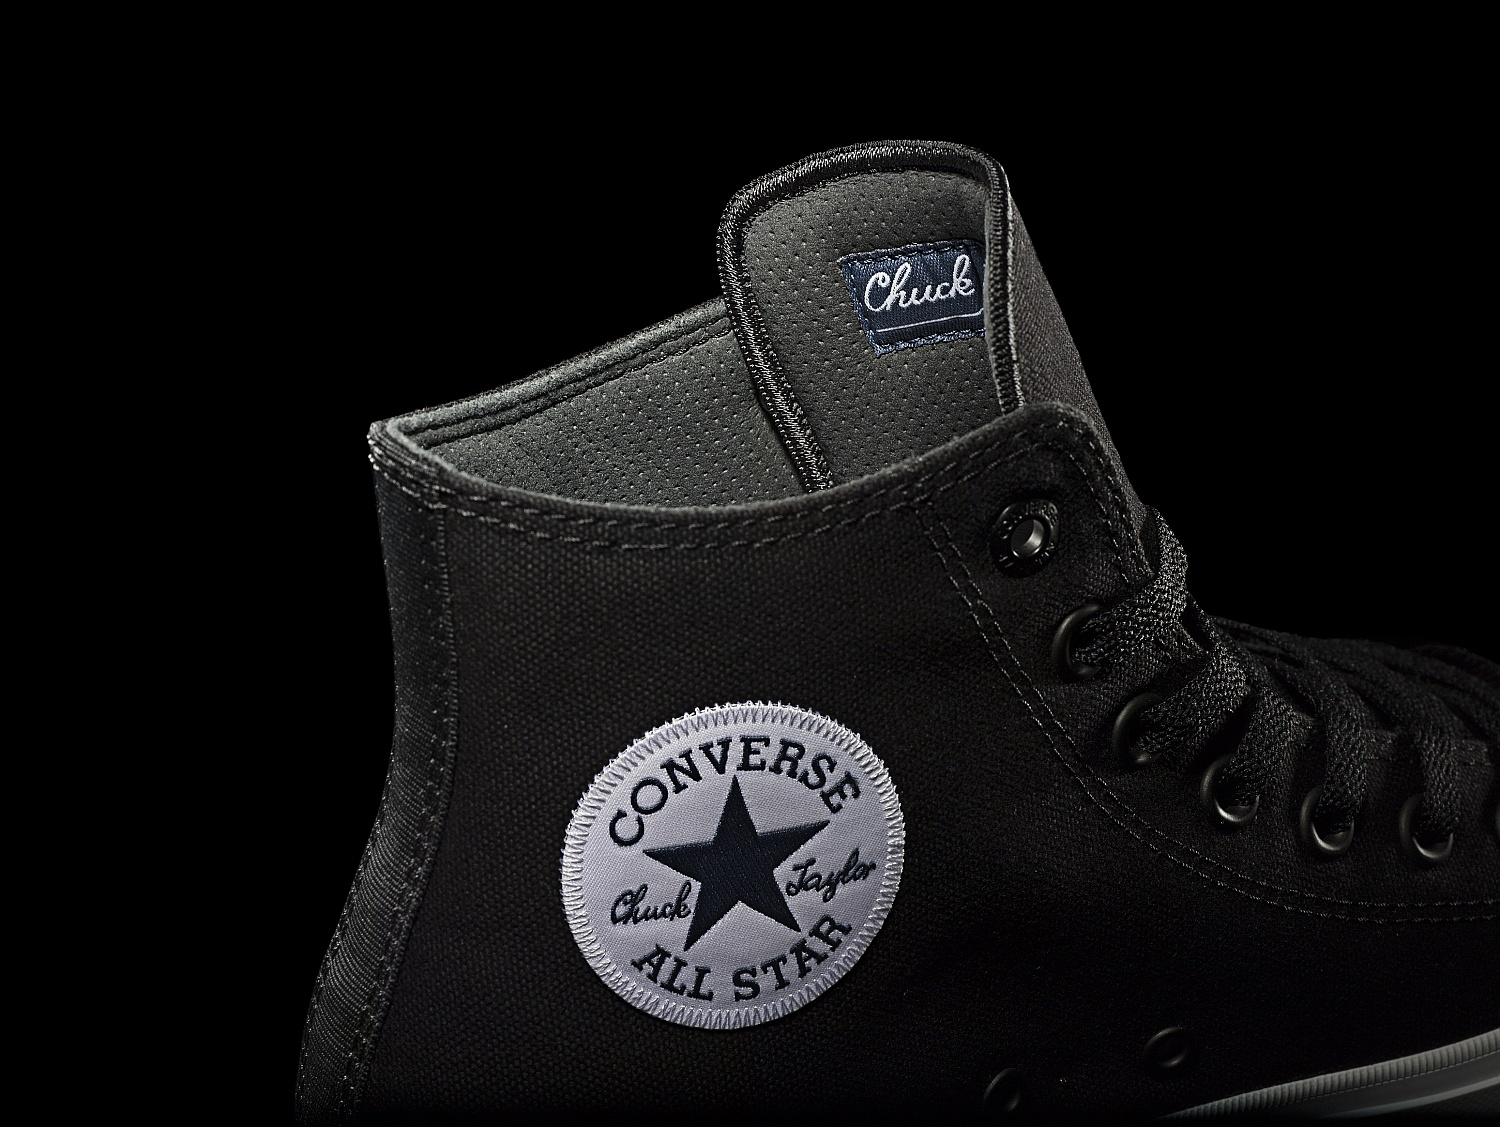 b4c87339bc95 ... boty Converse Chuck Taylor All Star II Hi - 150143 Black White Navy ...